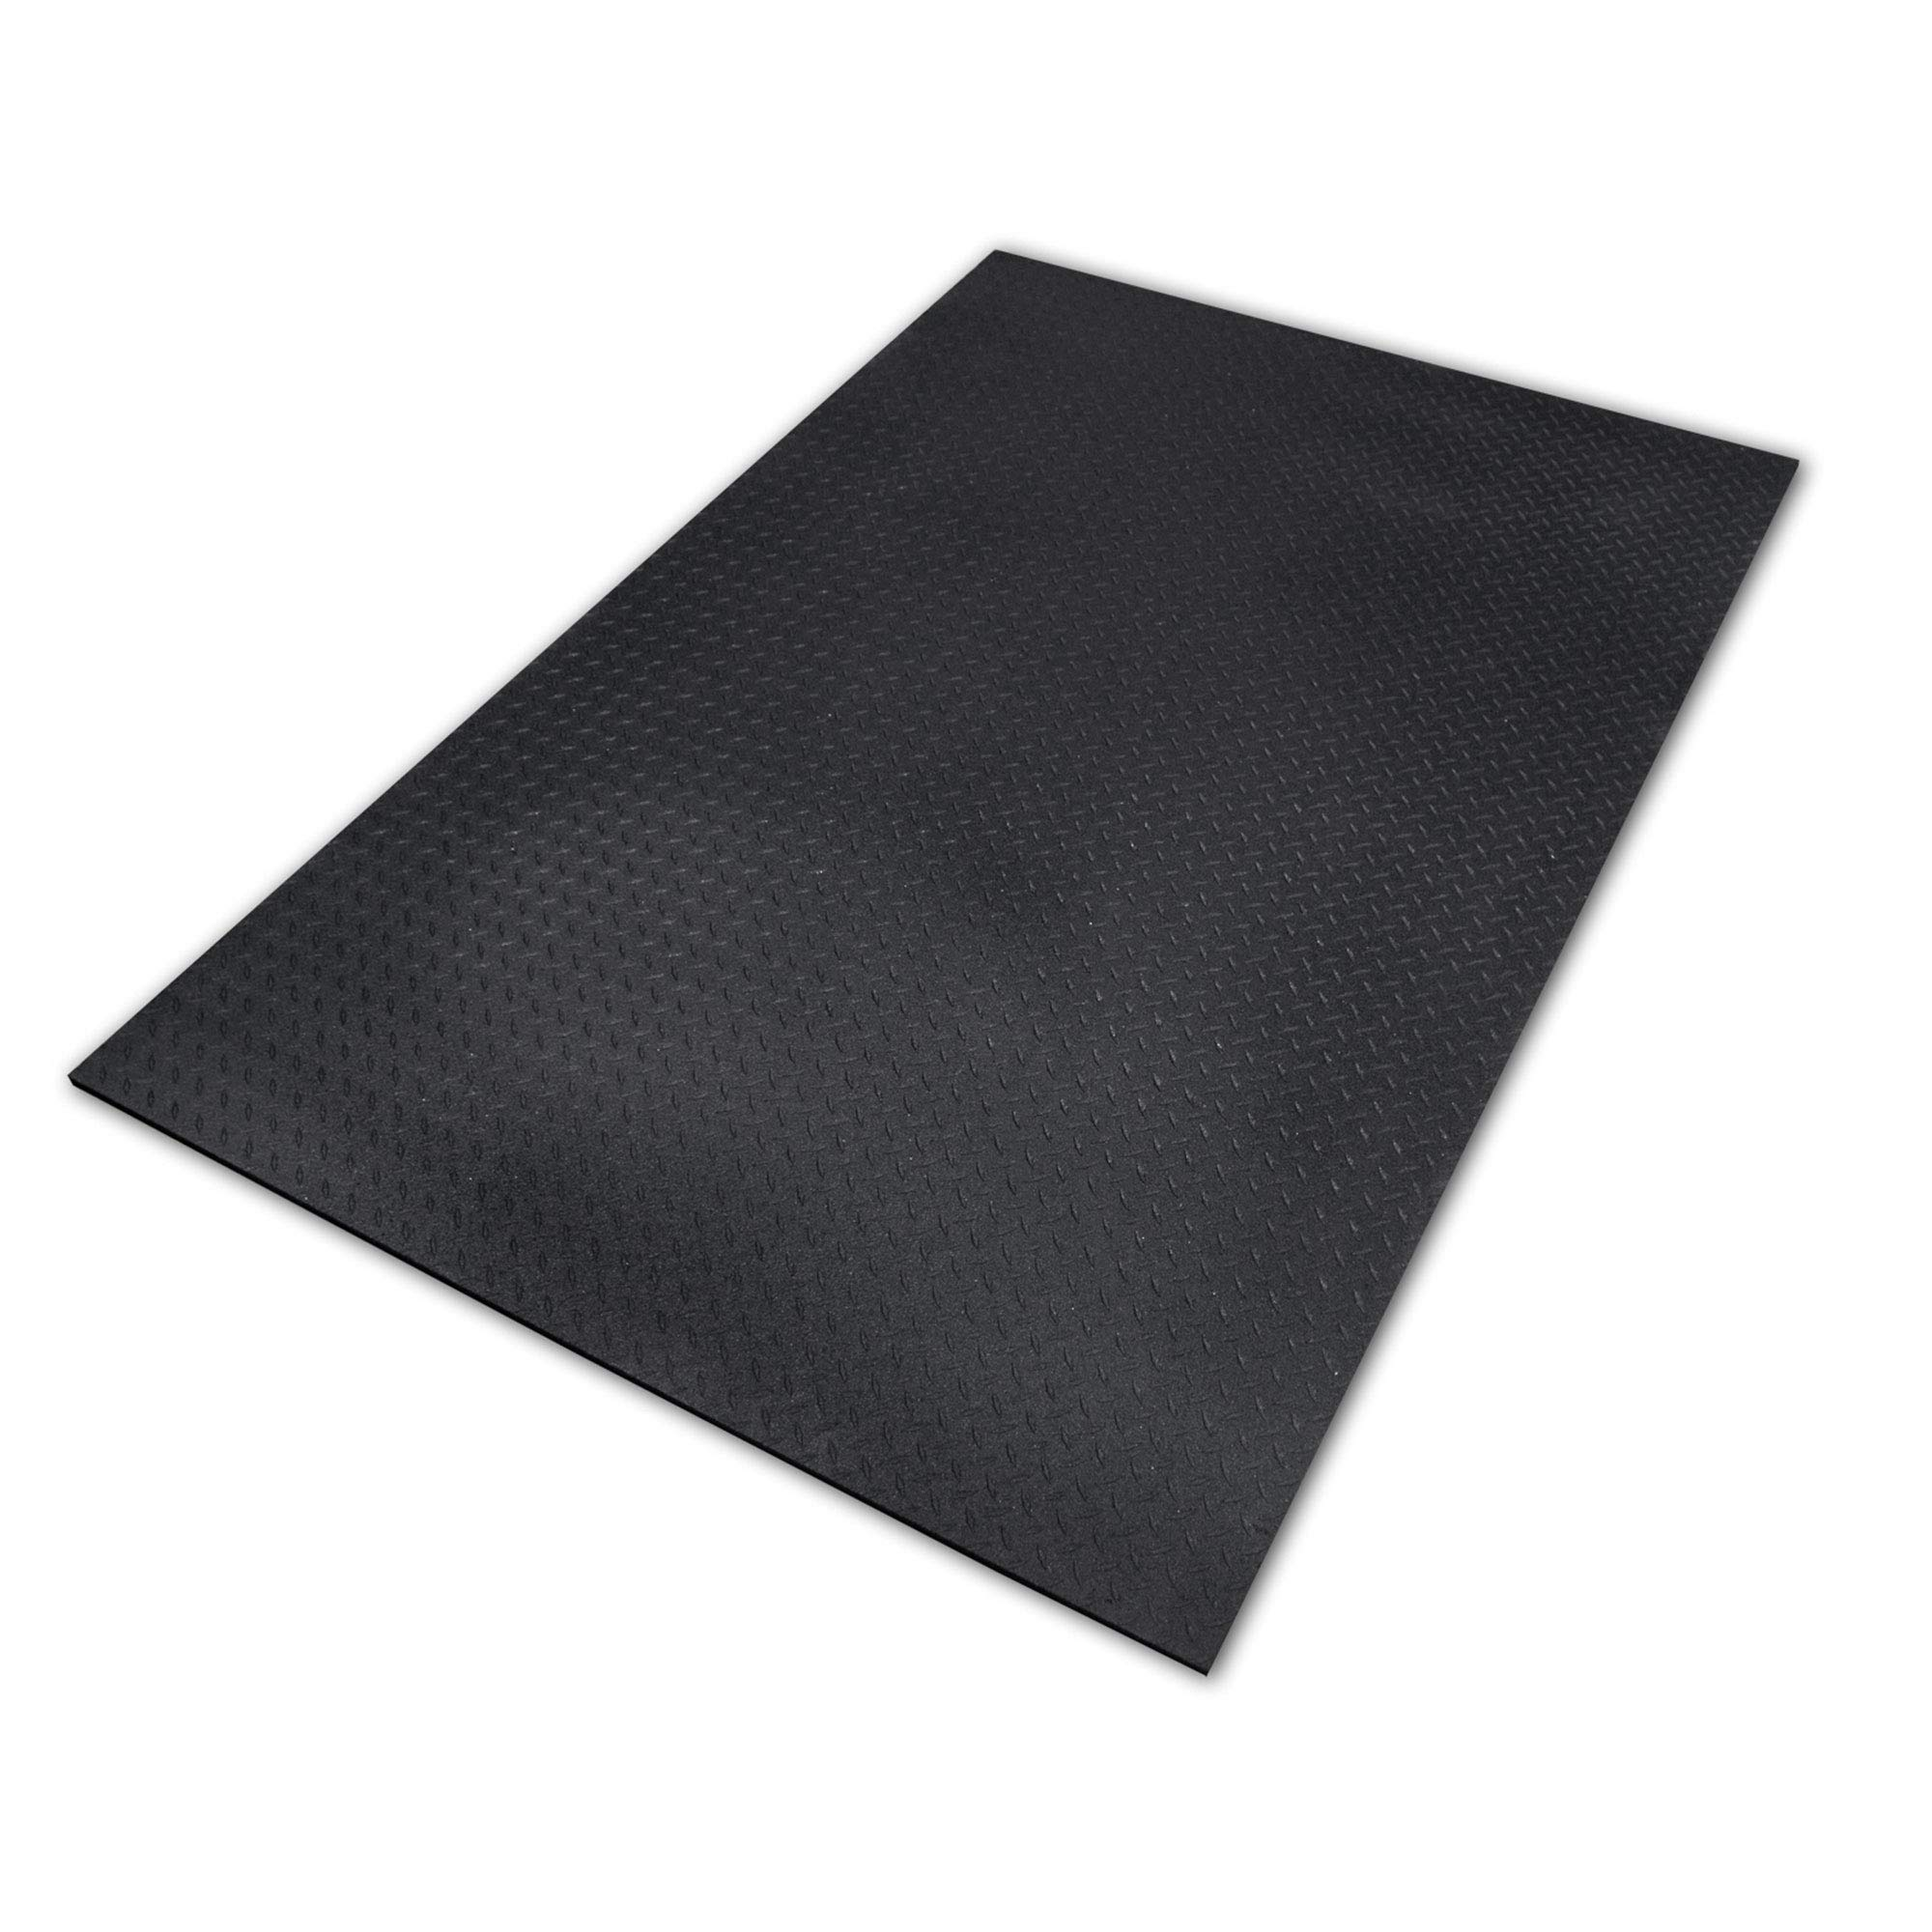 Equine Stall Mat, Bed Mat, Barn Flooring, Kennel Floors - Heavy Duty Rubber Mat 4' x 6' x 1/2'' by Equine